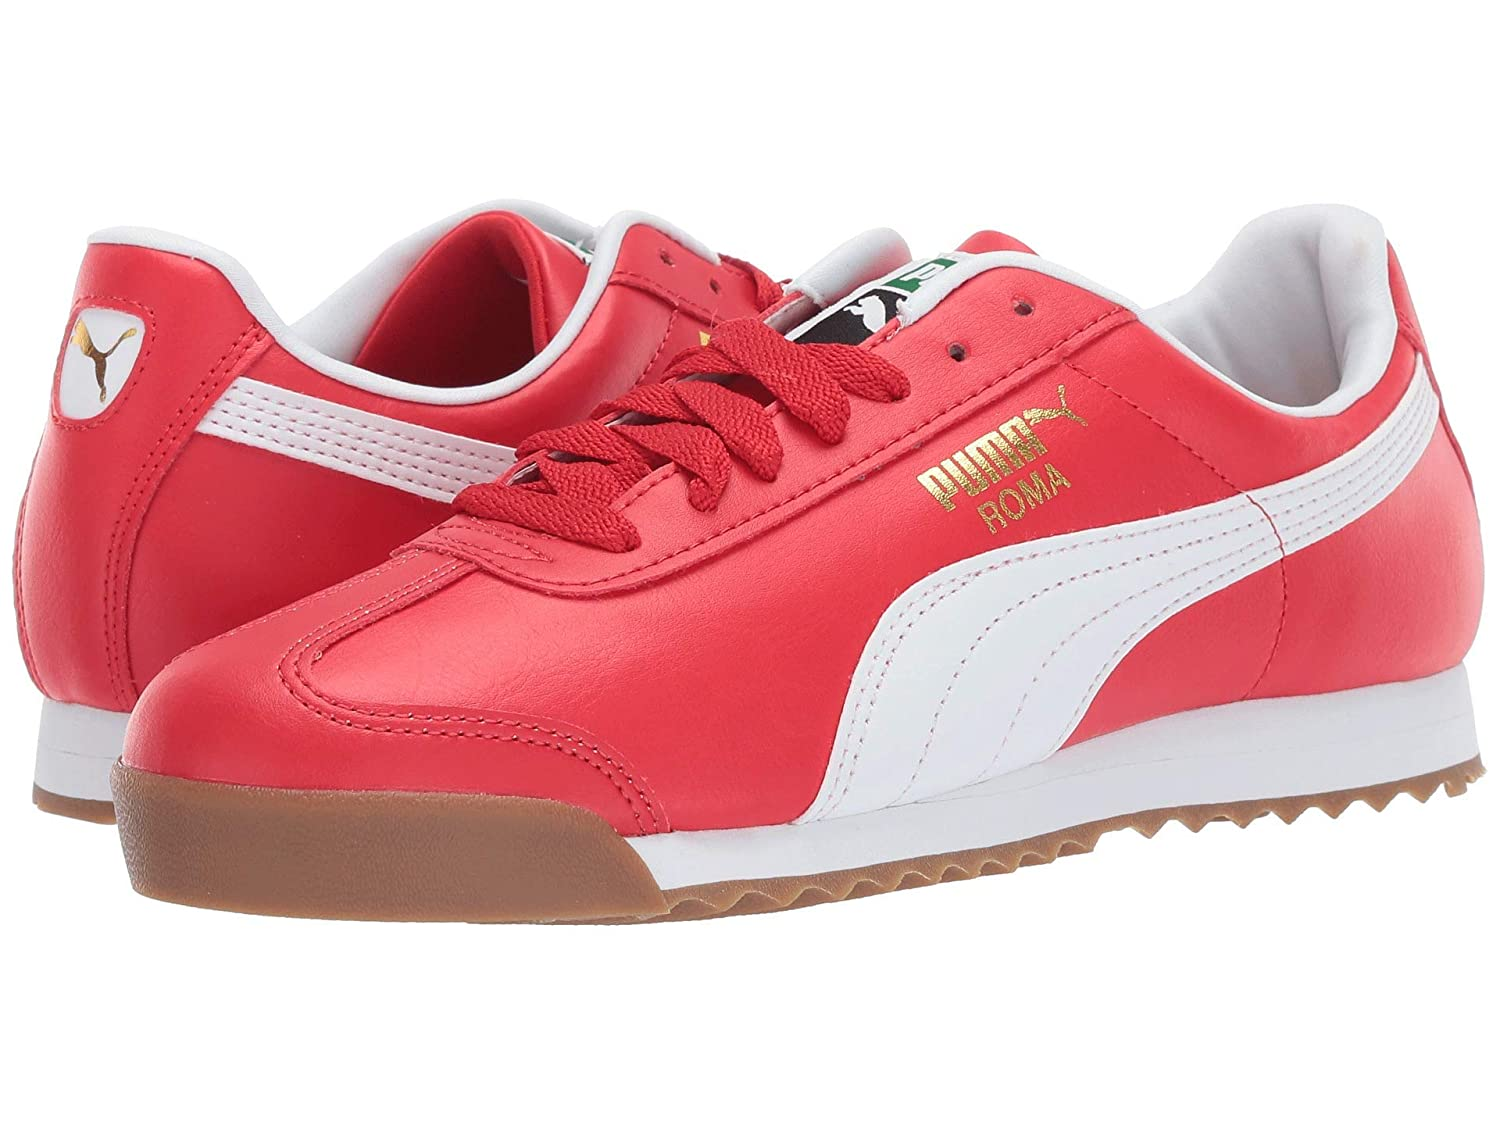 2019年秋冬新作 [プーマ] メンズランニングシューズスニーカー靴 Roma White Basic [並行輸入品] Red/Puma 25.5 B07N8DZVDK High Risk Red/Puma White 25.5 cm D 25.5 cm D|High Risk Red/Puma White, 天白区:79643773 --- a0267596.xsph.ru